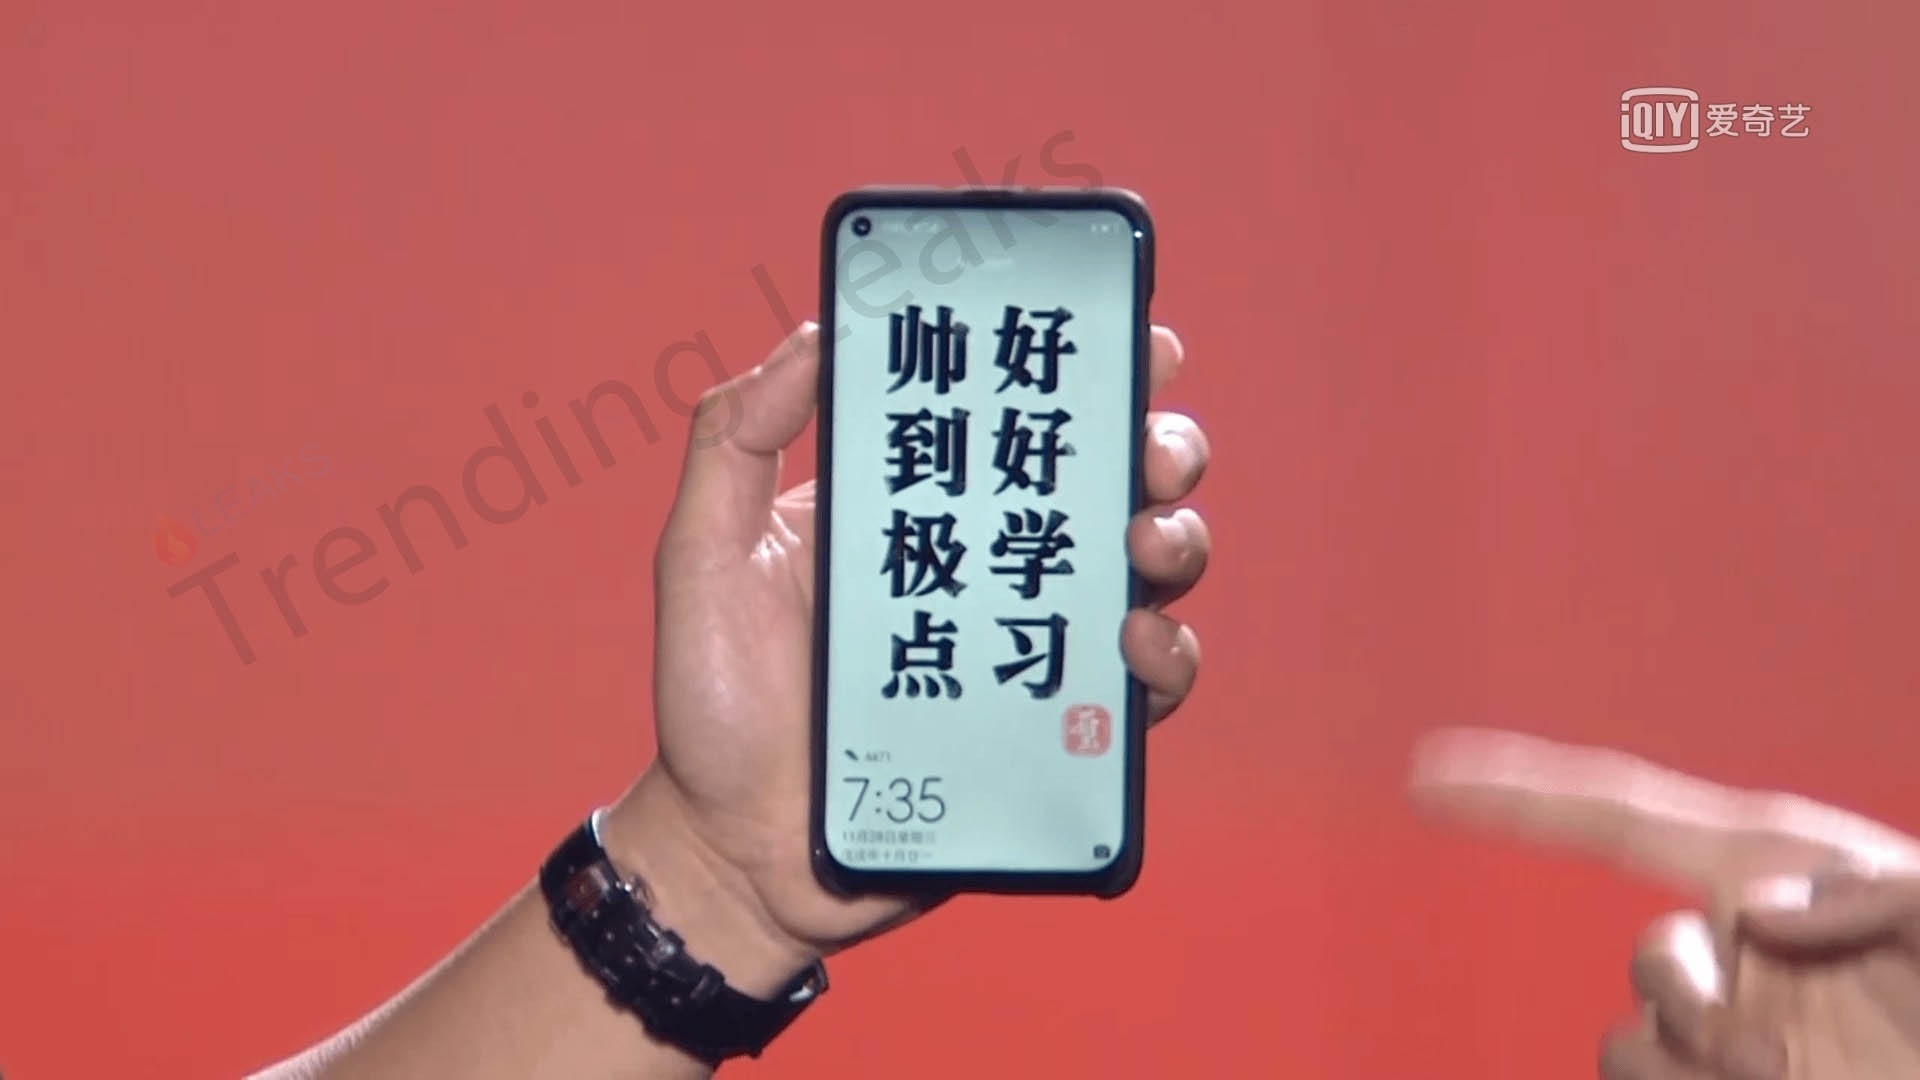 Huawei's pin hole camera phone shown off in leaked image